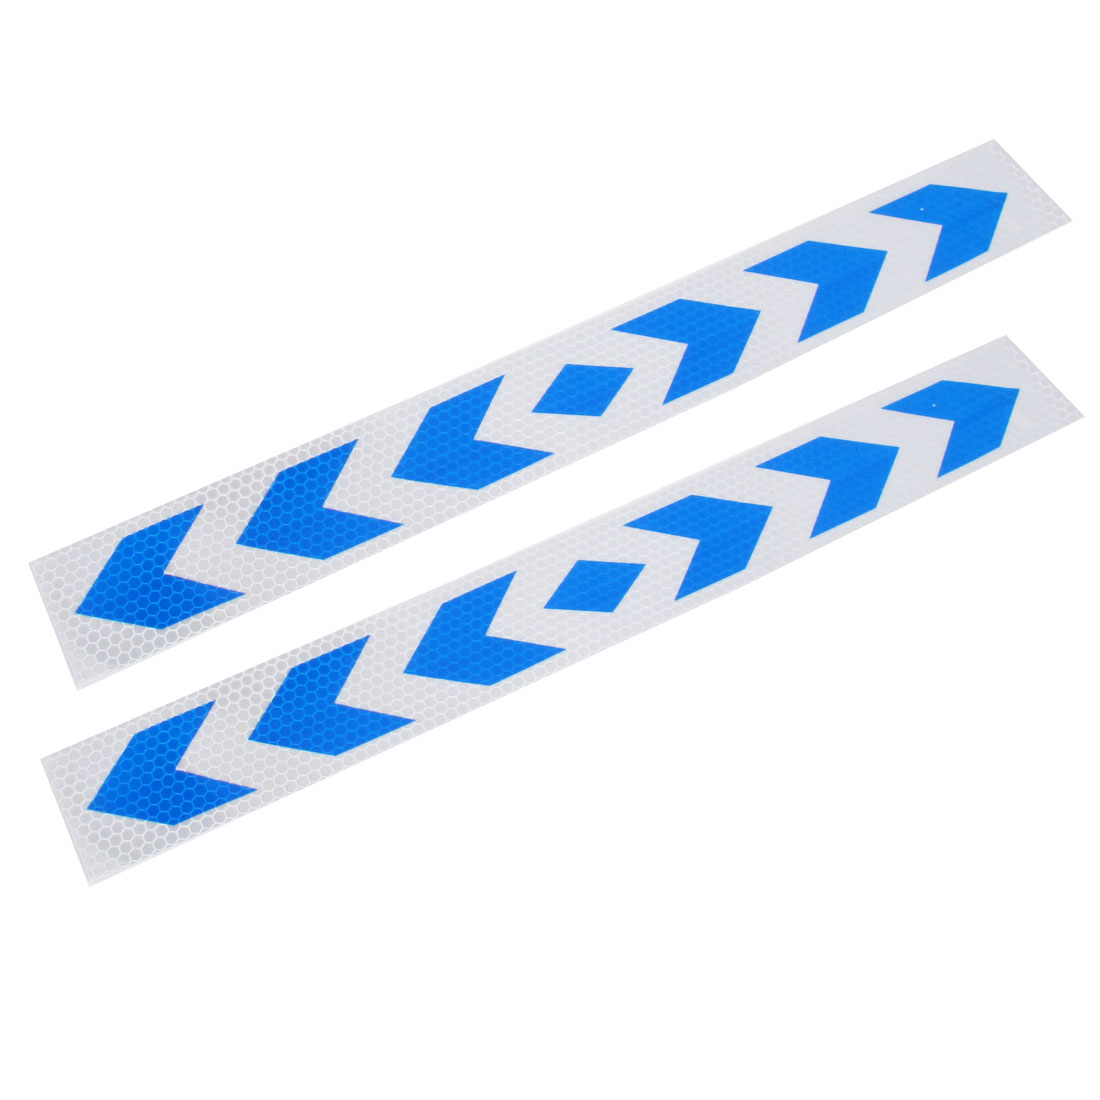 2 Pcs Blue Silver Tone Arrow Pattern Reflective Car Sticker Decal